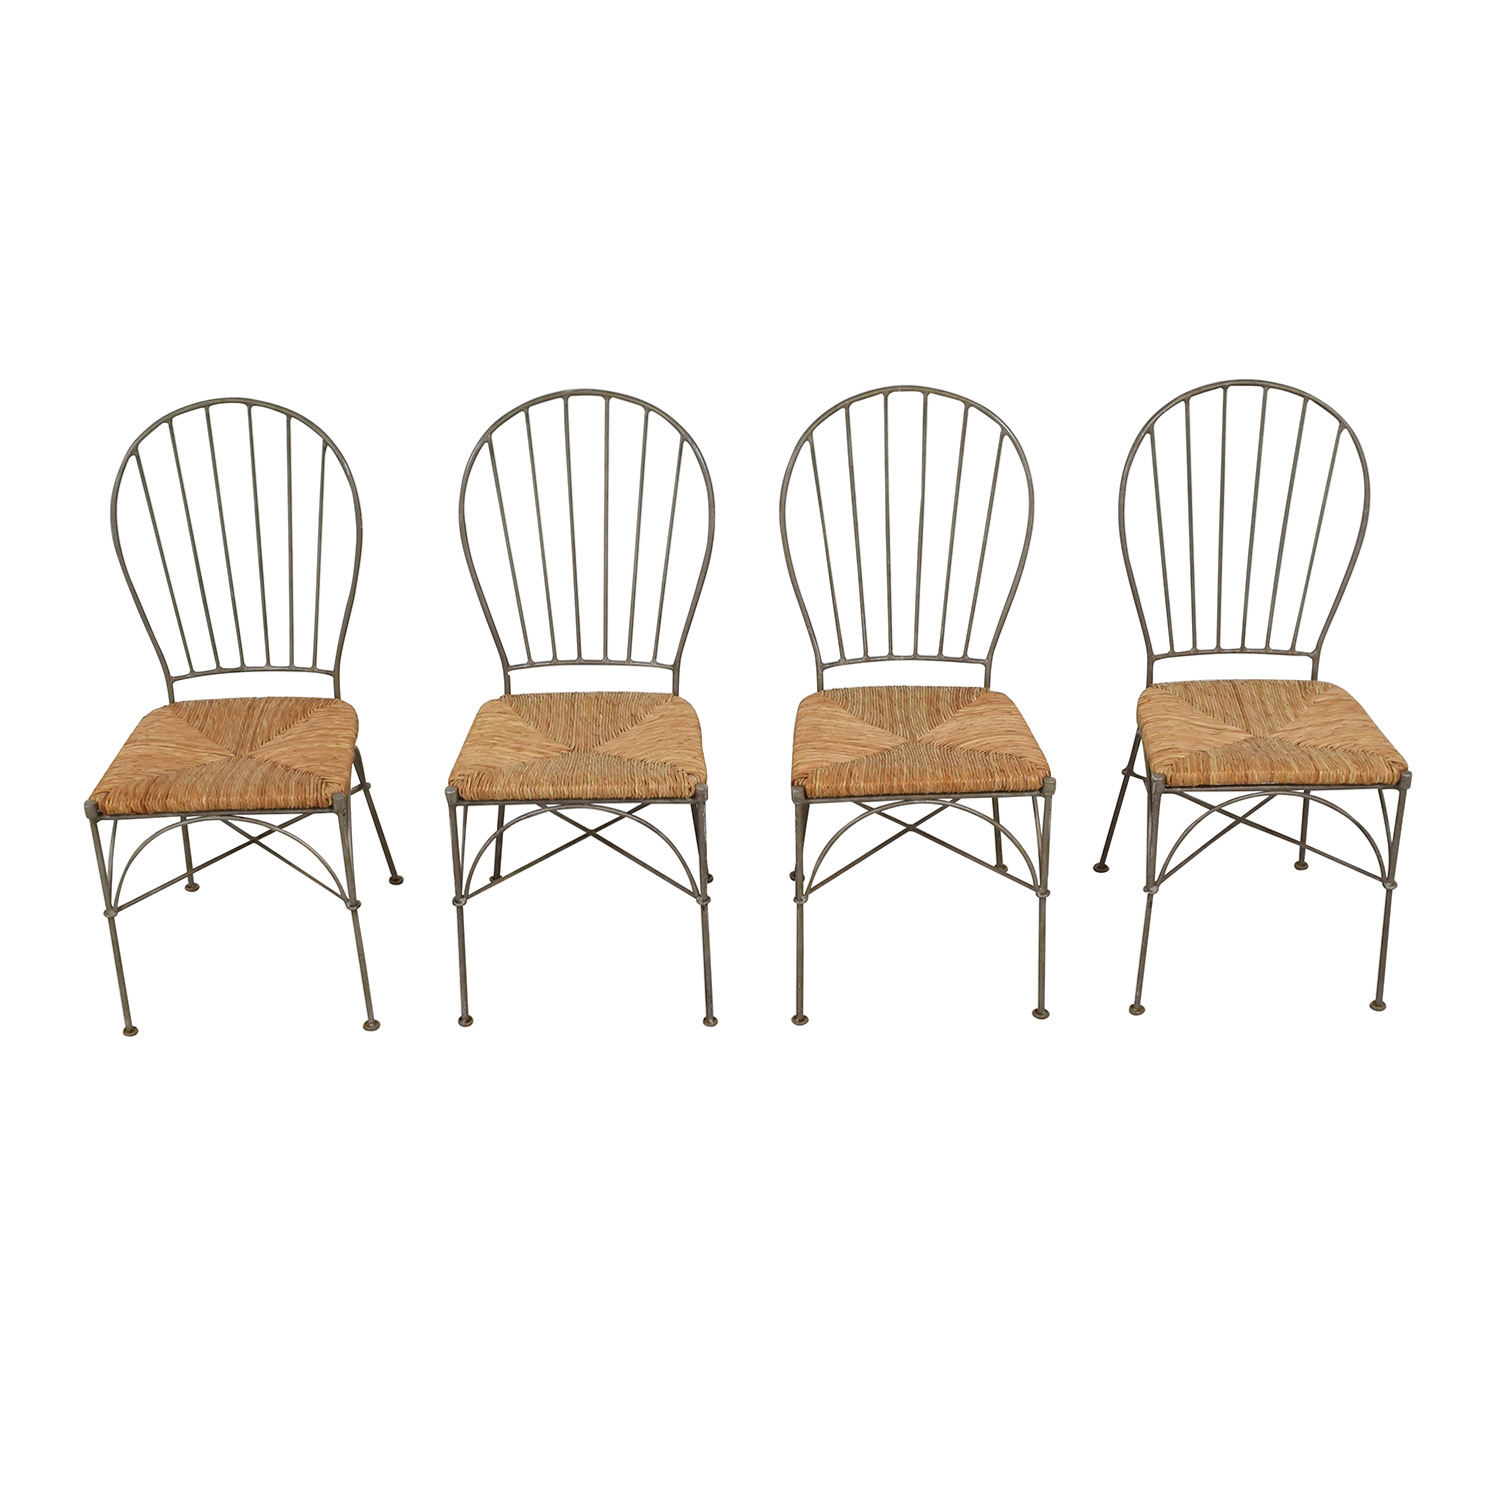 Pier 1 Pier 1 Woven Seat Dining Chairs for sale